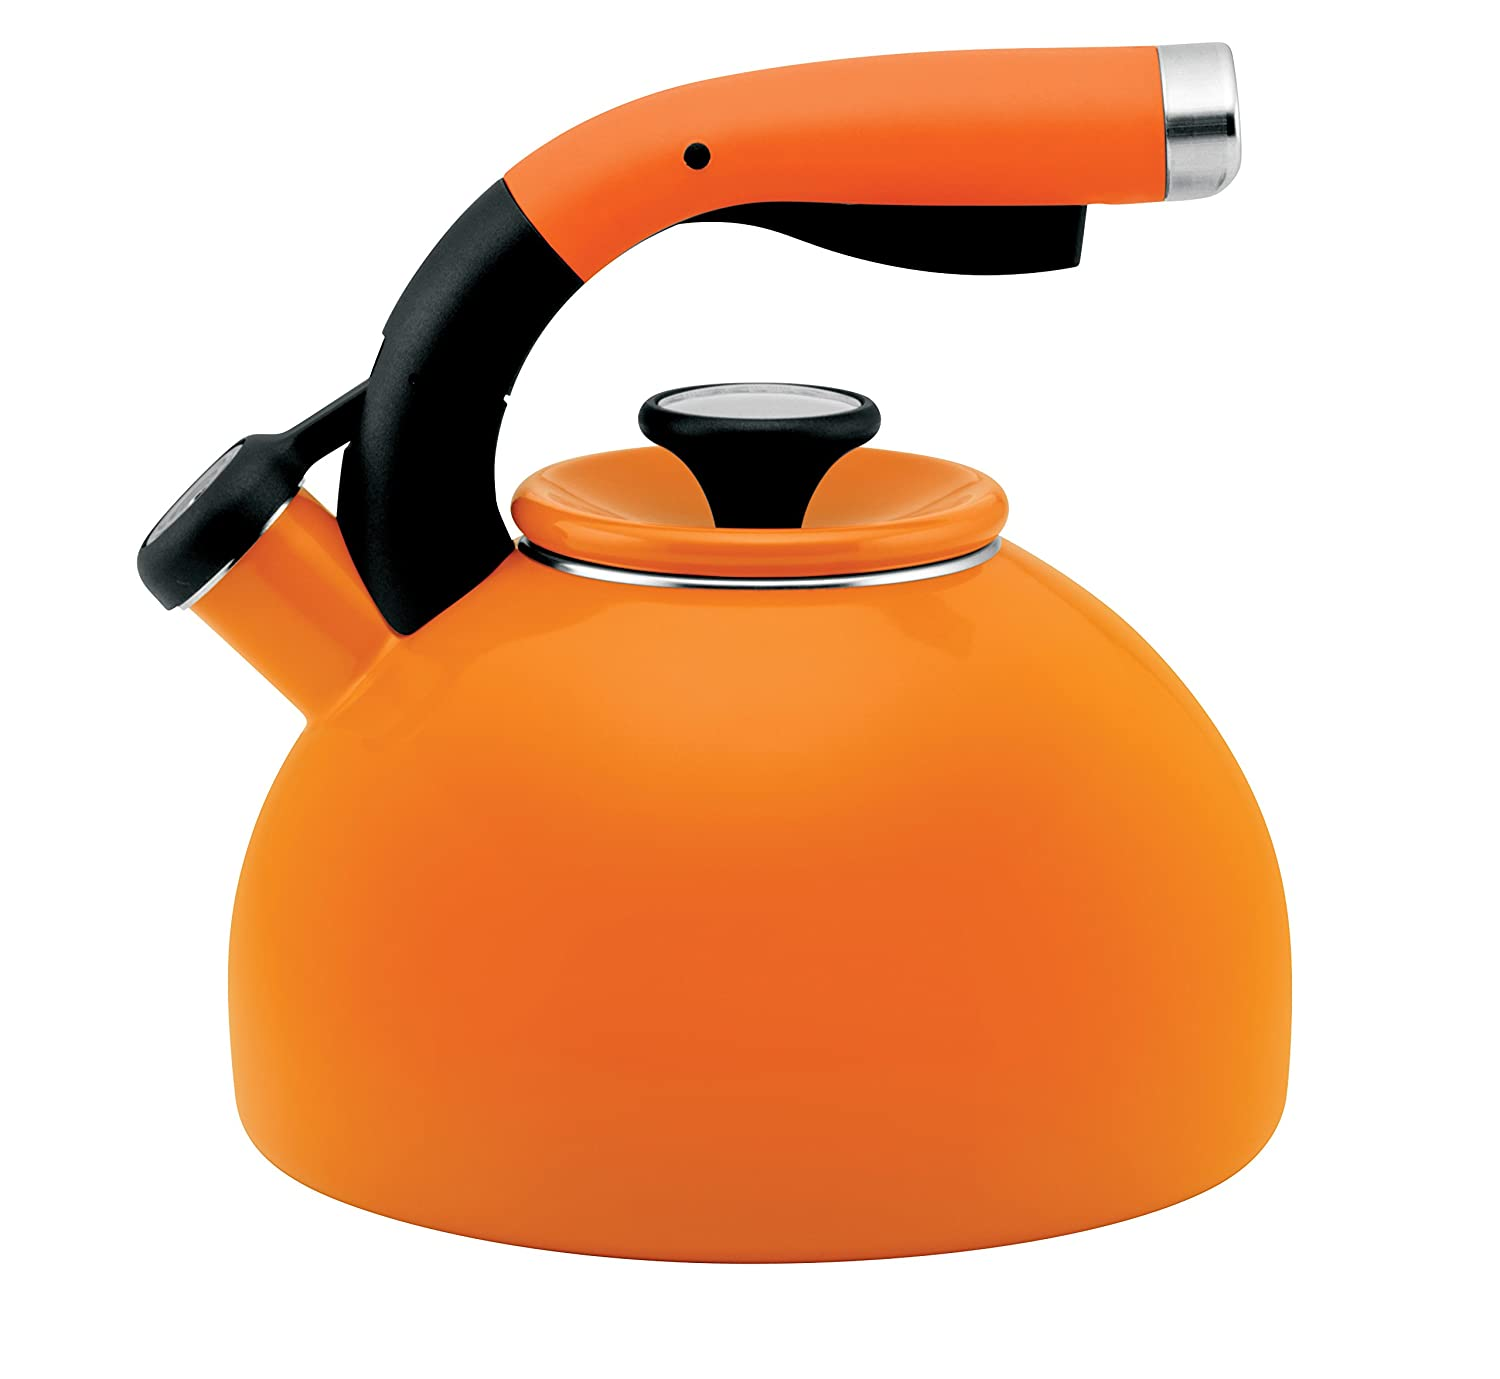 amazoncom circulon quart morning bird teakettle mandarin  - amazoncom circulon quart morning bird teakettle mandarin orangeteakettles kitchen  dining